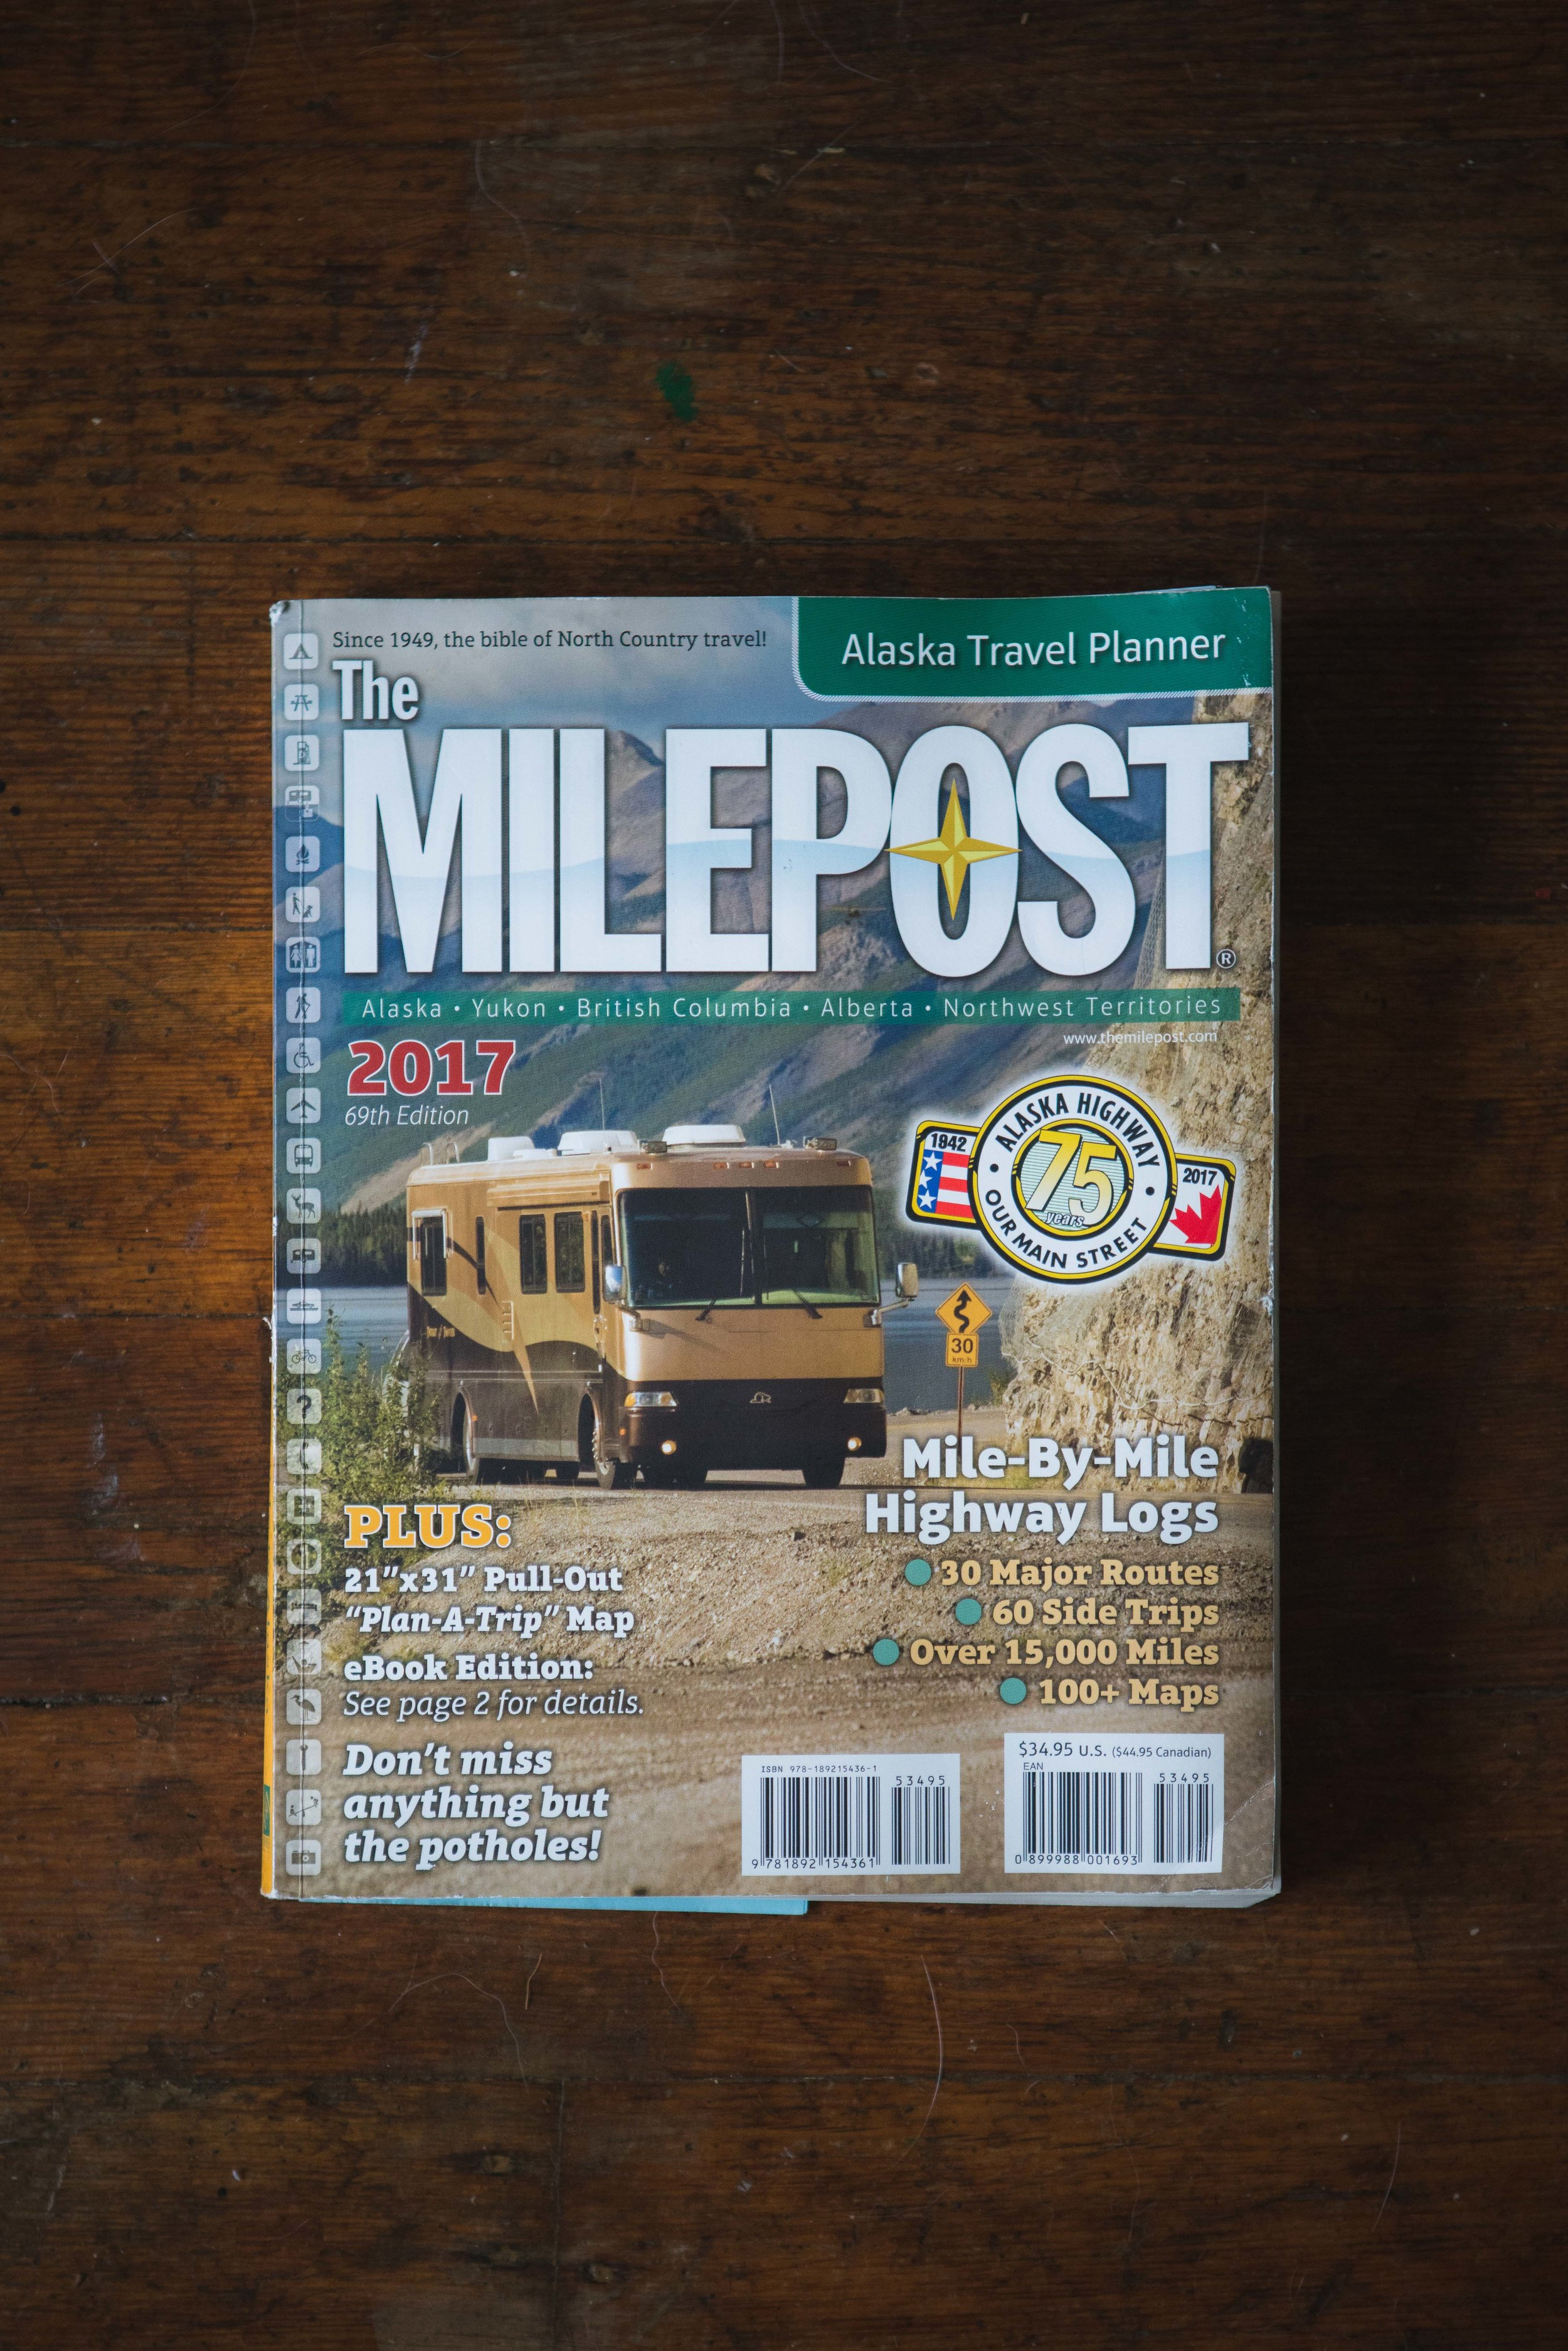 The Milepost - The Bread and Butter of any Alaskan Road trip. This bad baby has everything you need to get you through the last frontier. We found that our GPS in our cars doesn't include anything pass the lower 48, so we ended up utilizing the large map of Alaska that was included within the book. It'll tell you were everything is, one milepost at a time, to course your adventure and to pace yourself for unforgiving and endless roads. With this book, Alana and I could plan out how far to travel, where to get gas, bathroom breaks, camp spots, scenic spots and even just random tidbit of historical informations to keep up entertained through the journey. Once we get pass Seattle into Canada, our lower 48's cellphone service won't work, not even in Alaska so having a great back up travel guide is a safe bet to stay safe in the wilderness.